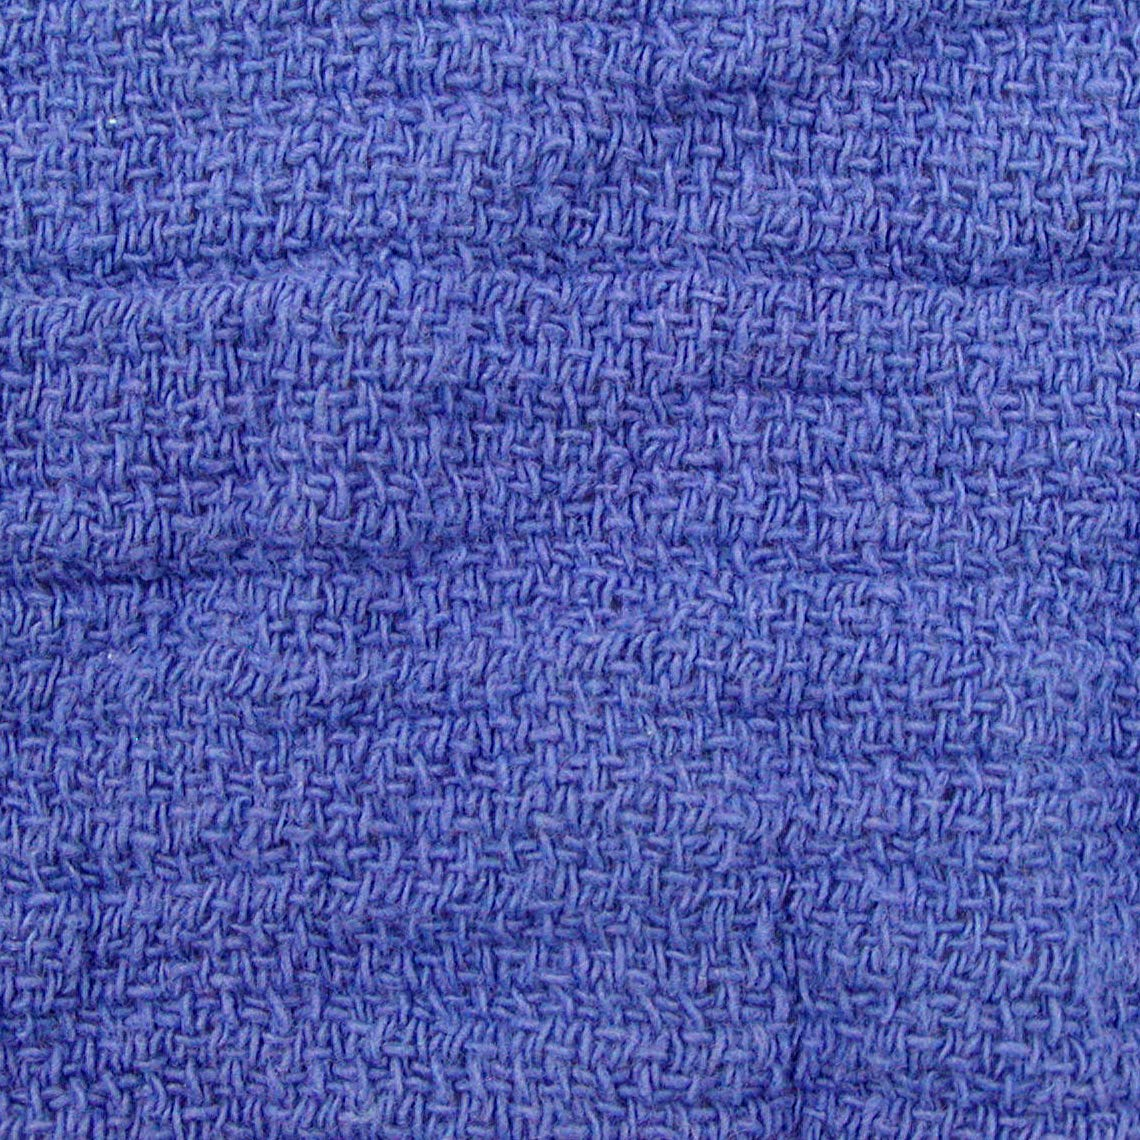 Recycled Blue Surgical Towel Rags - 10 Pound Box - A Perfect Non-Streaking No Lint Towel by A&A Wiping Cloth (Image #3)